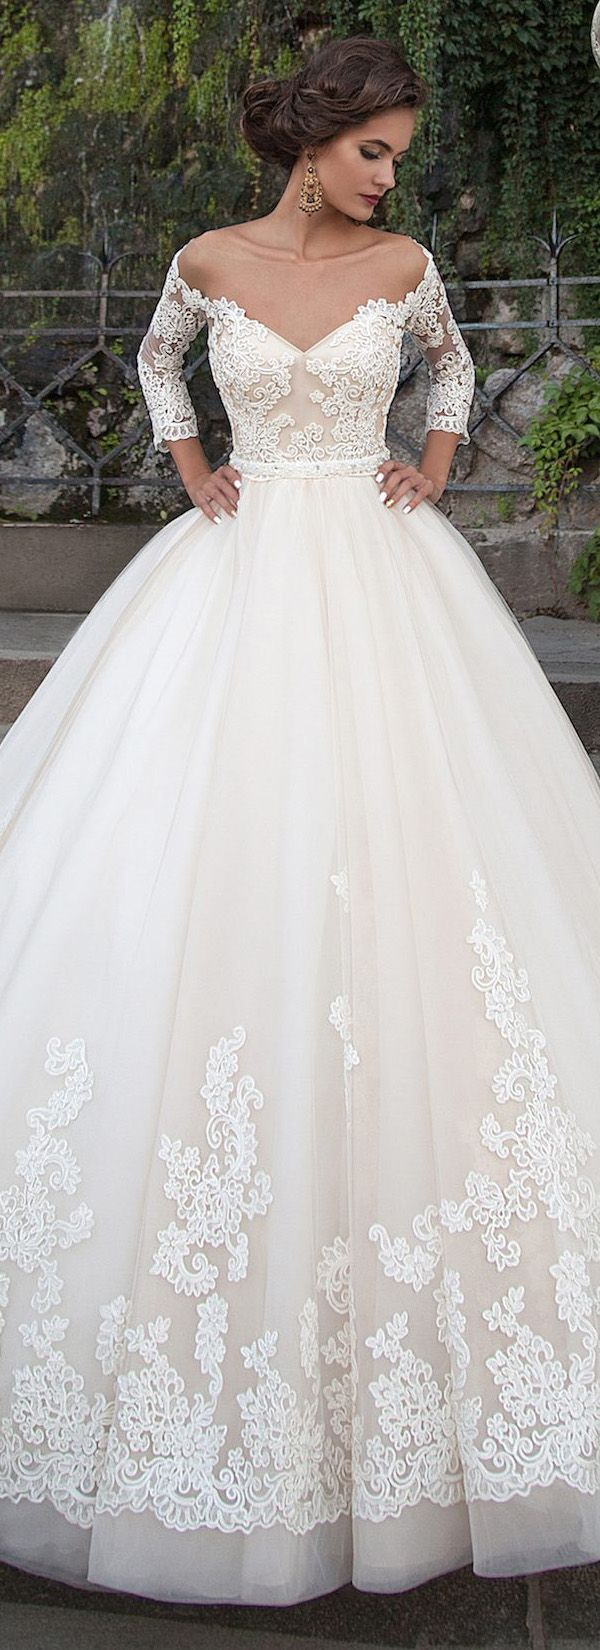 25 best ideas about Mexican wedding dresses on Pinterest  La sposa wedding gowns Illusion